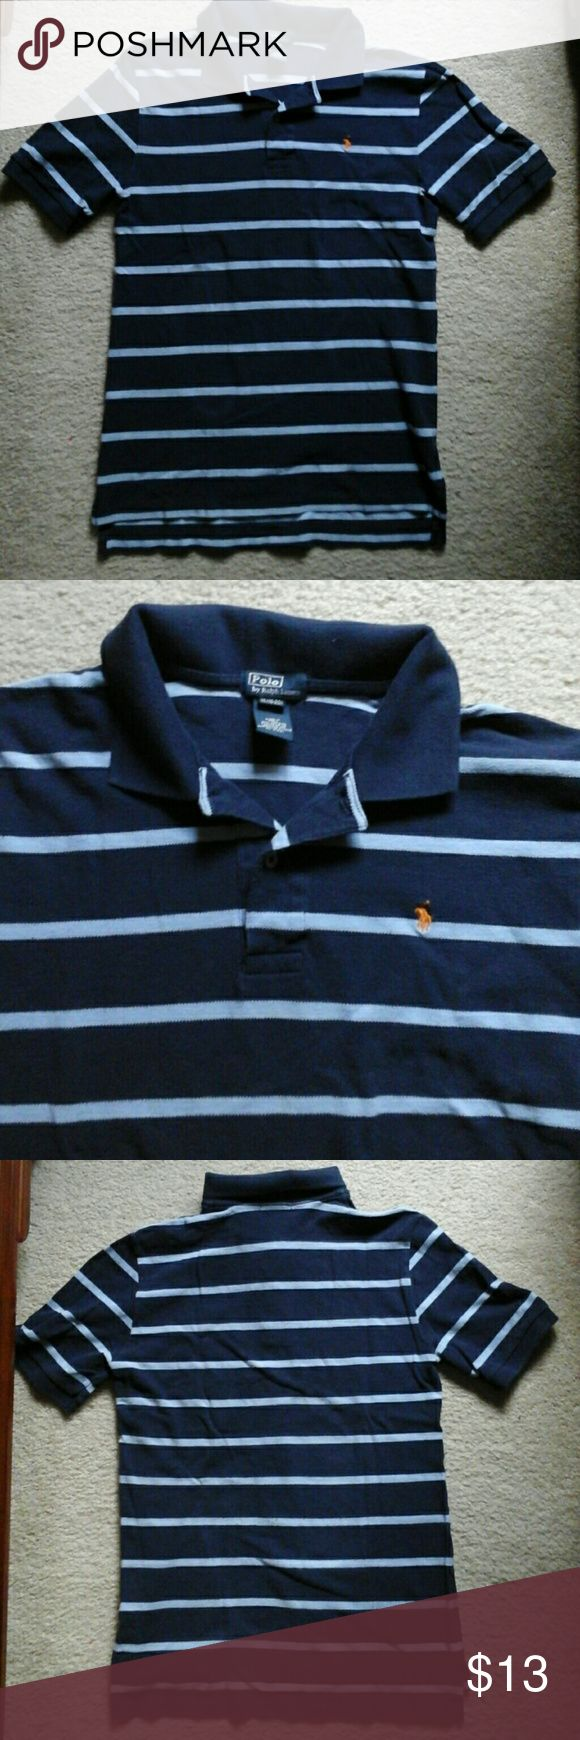 "⭐️ Polo by Ralph Lauren  ( teenager size) ⭐️ Polo collar shirt by Ralph Lauren  in Blue with light blue stripes  18"" under arm, 18"" wide 27 length Ralph Lauren Shirts & Tops Polos"